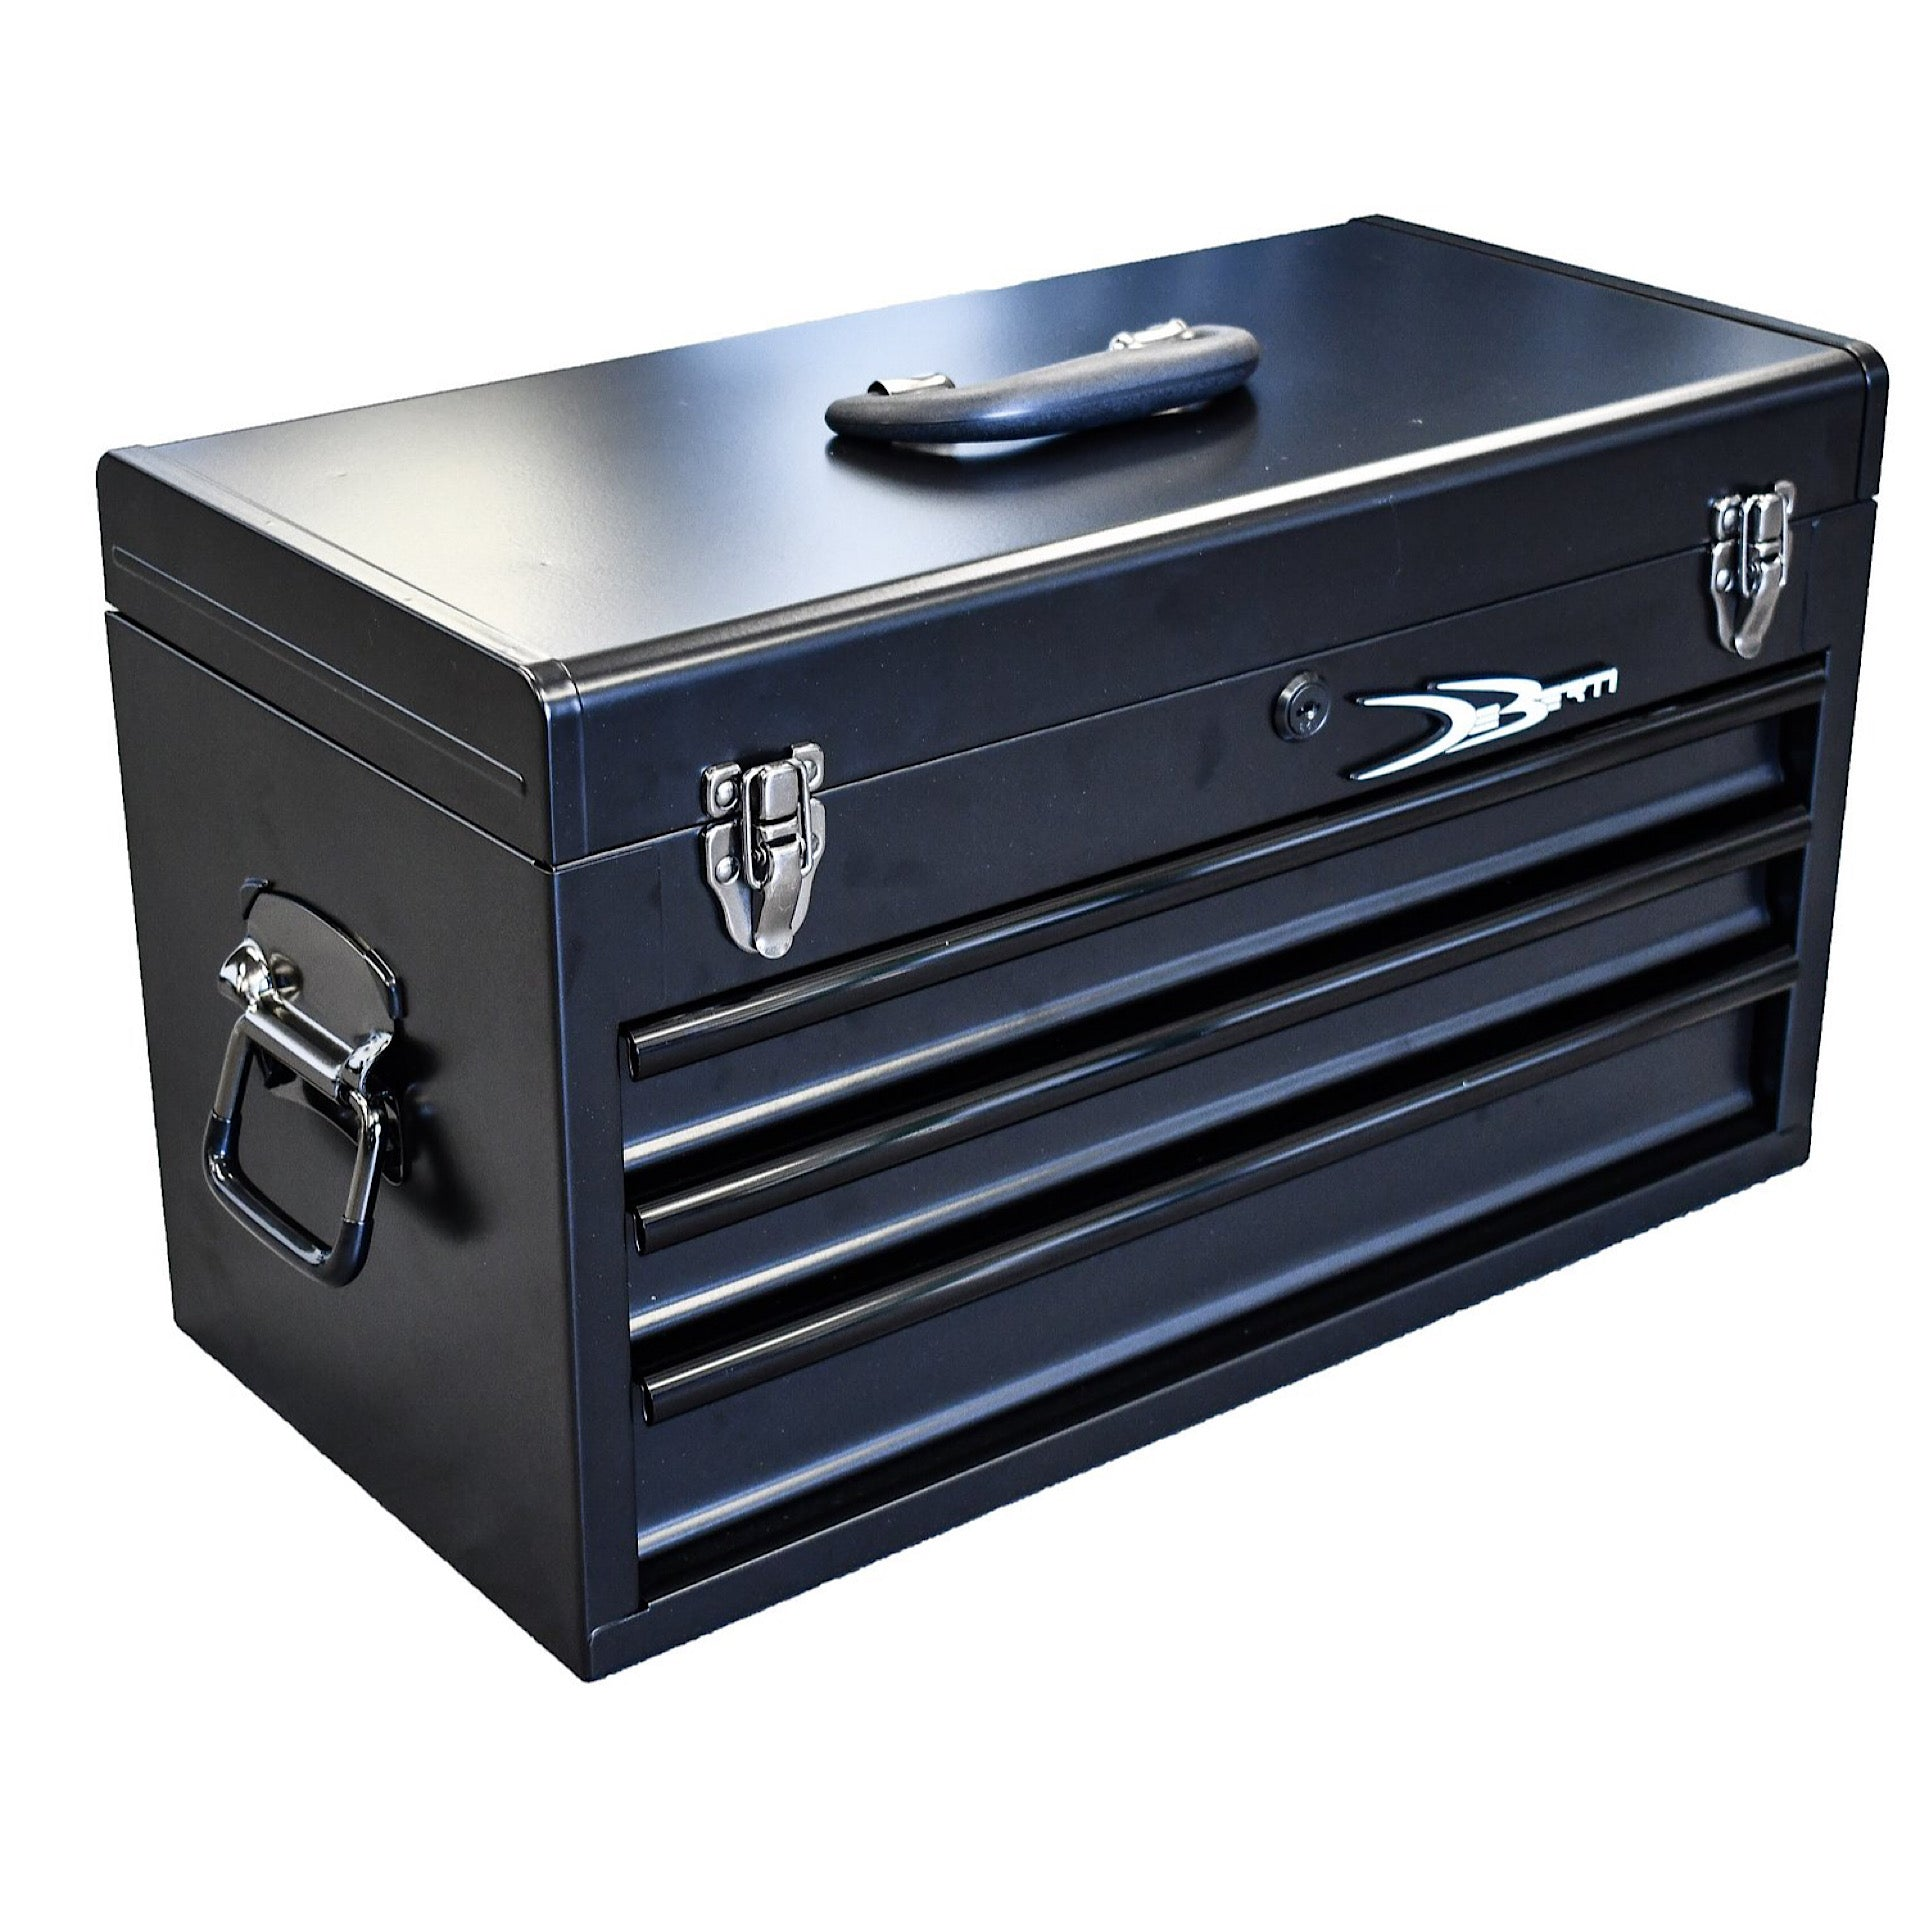 This tool box is blacked out, exterior color is matte black with gloss black accents.